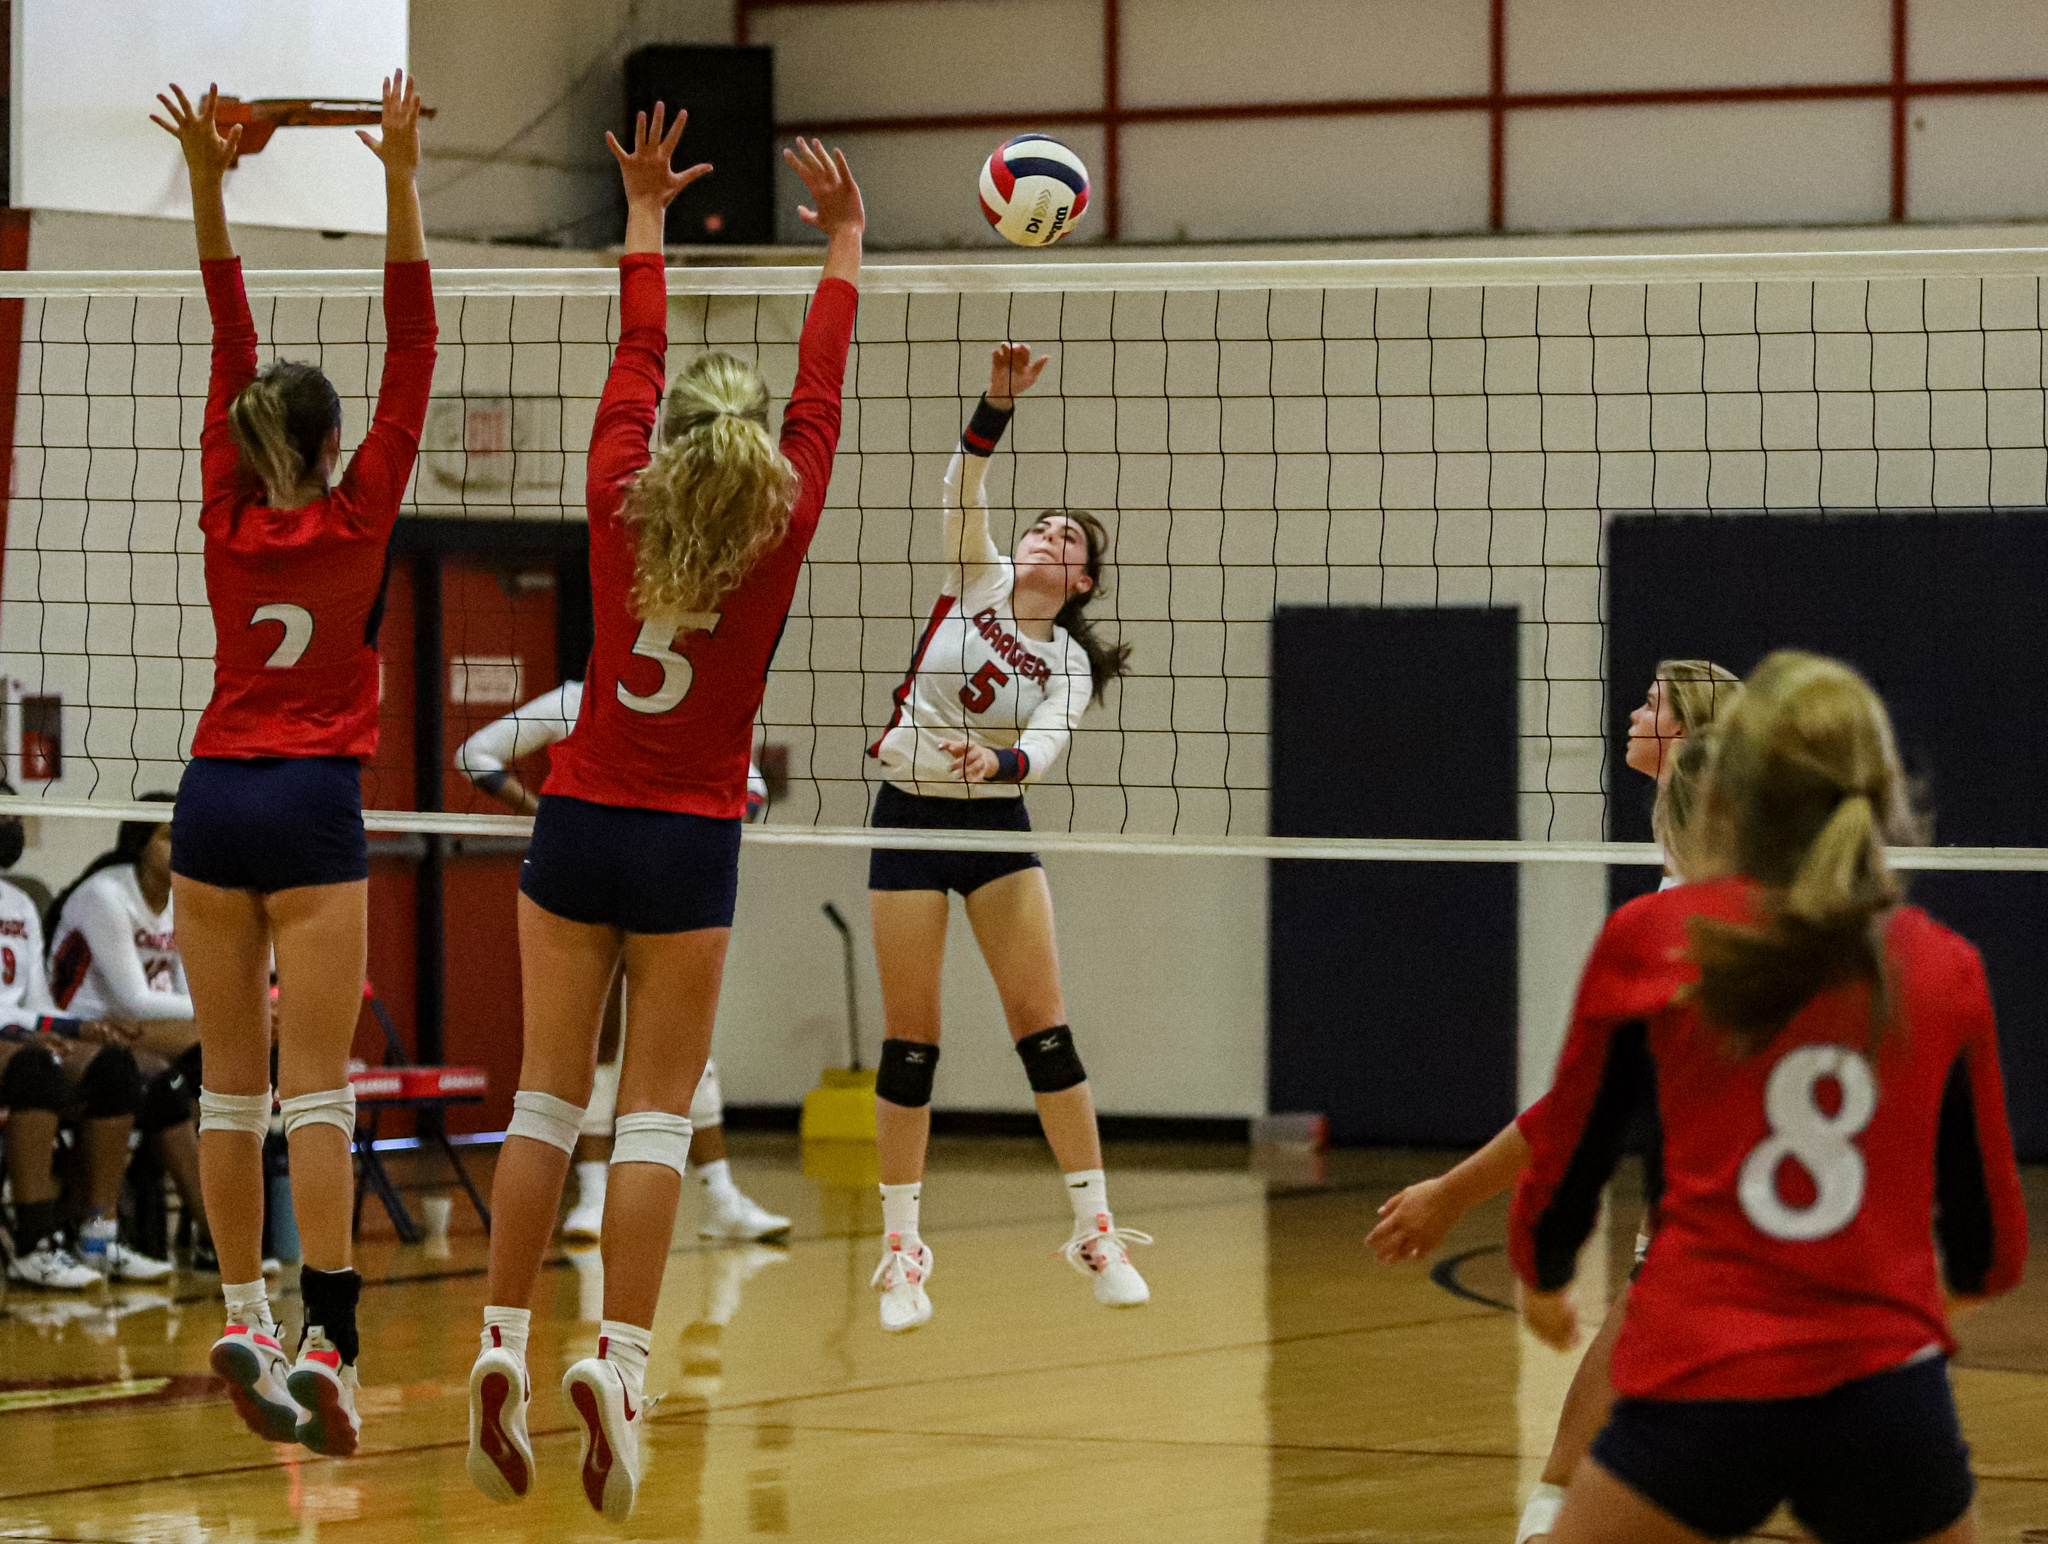 Volleyball: WCDS Goes Up Against Rocky Mount Academy (PHOTO GALLERY)